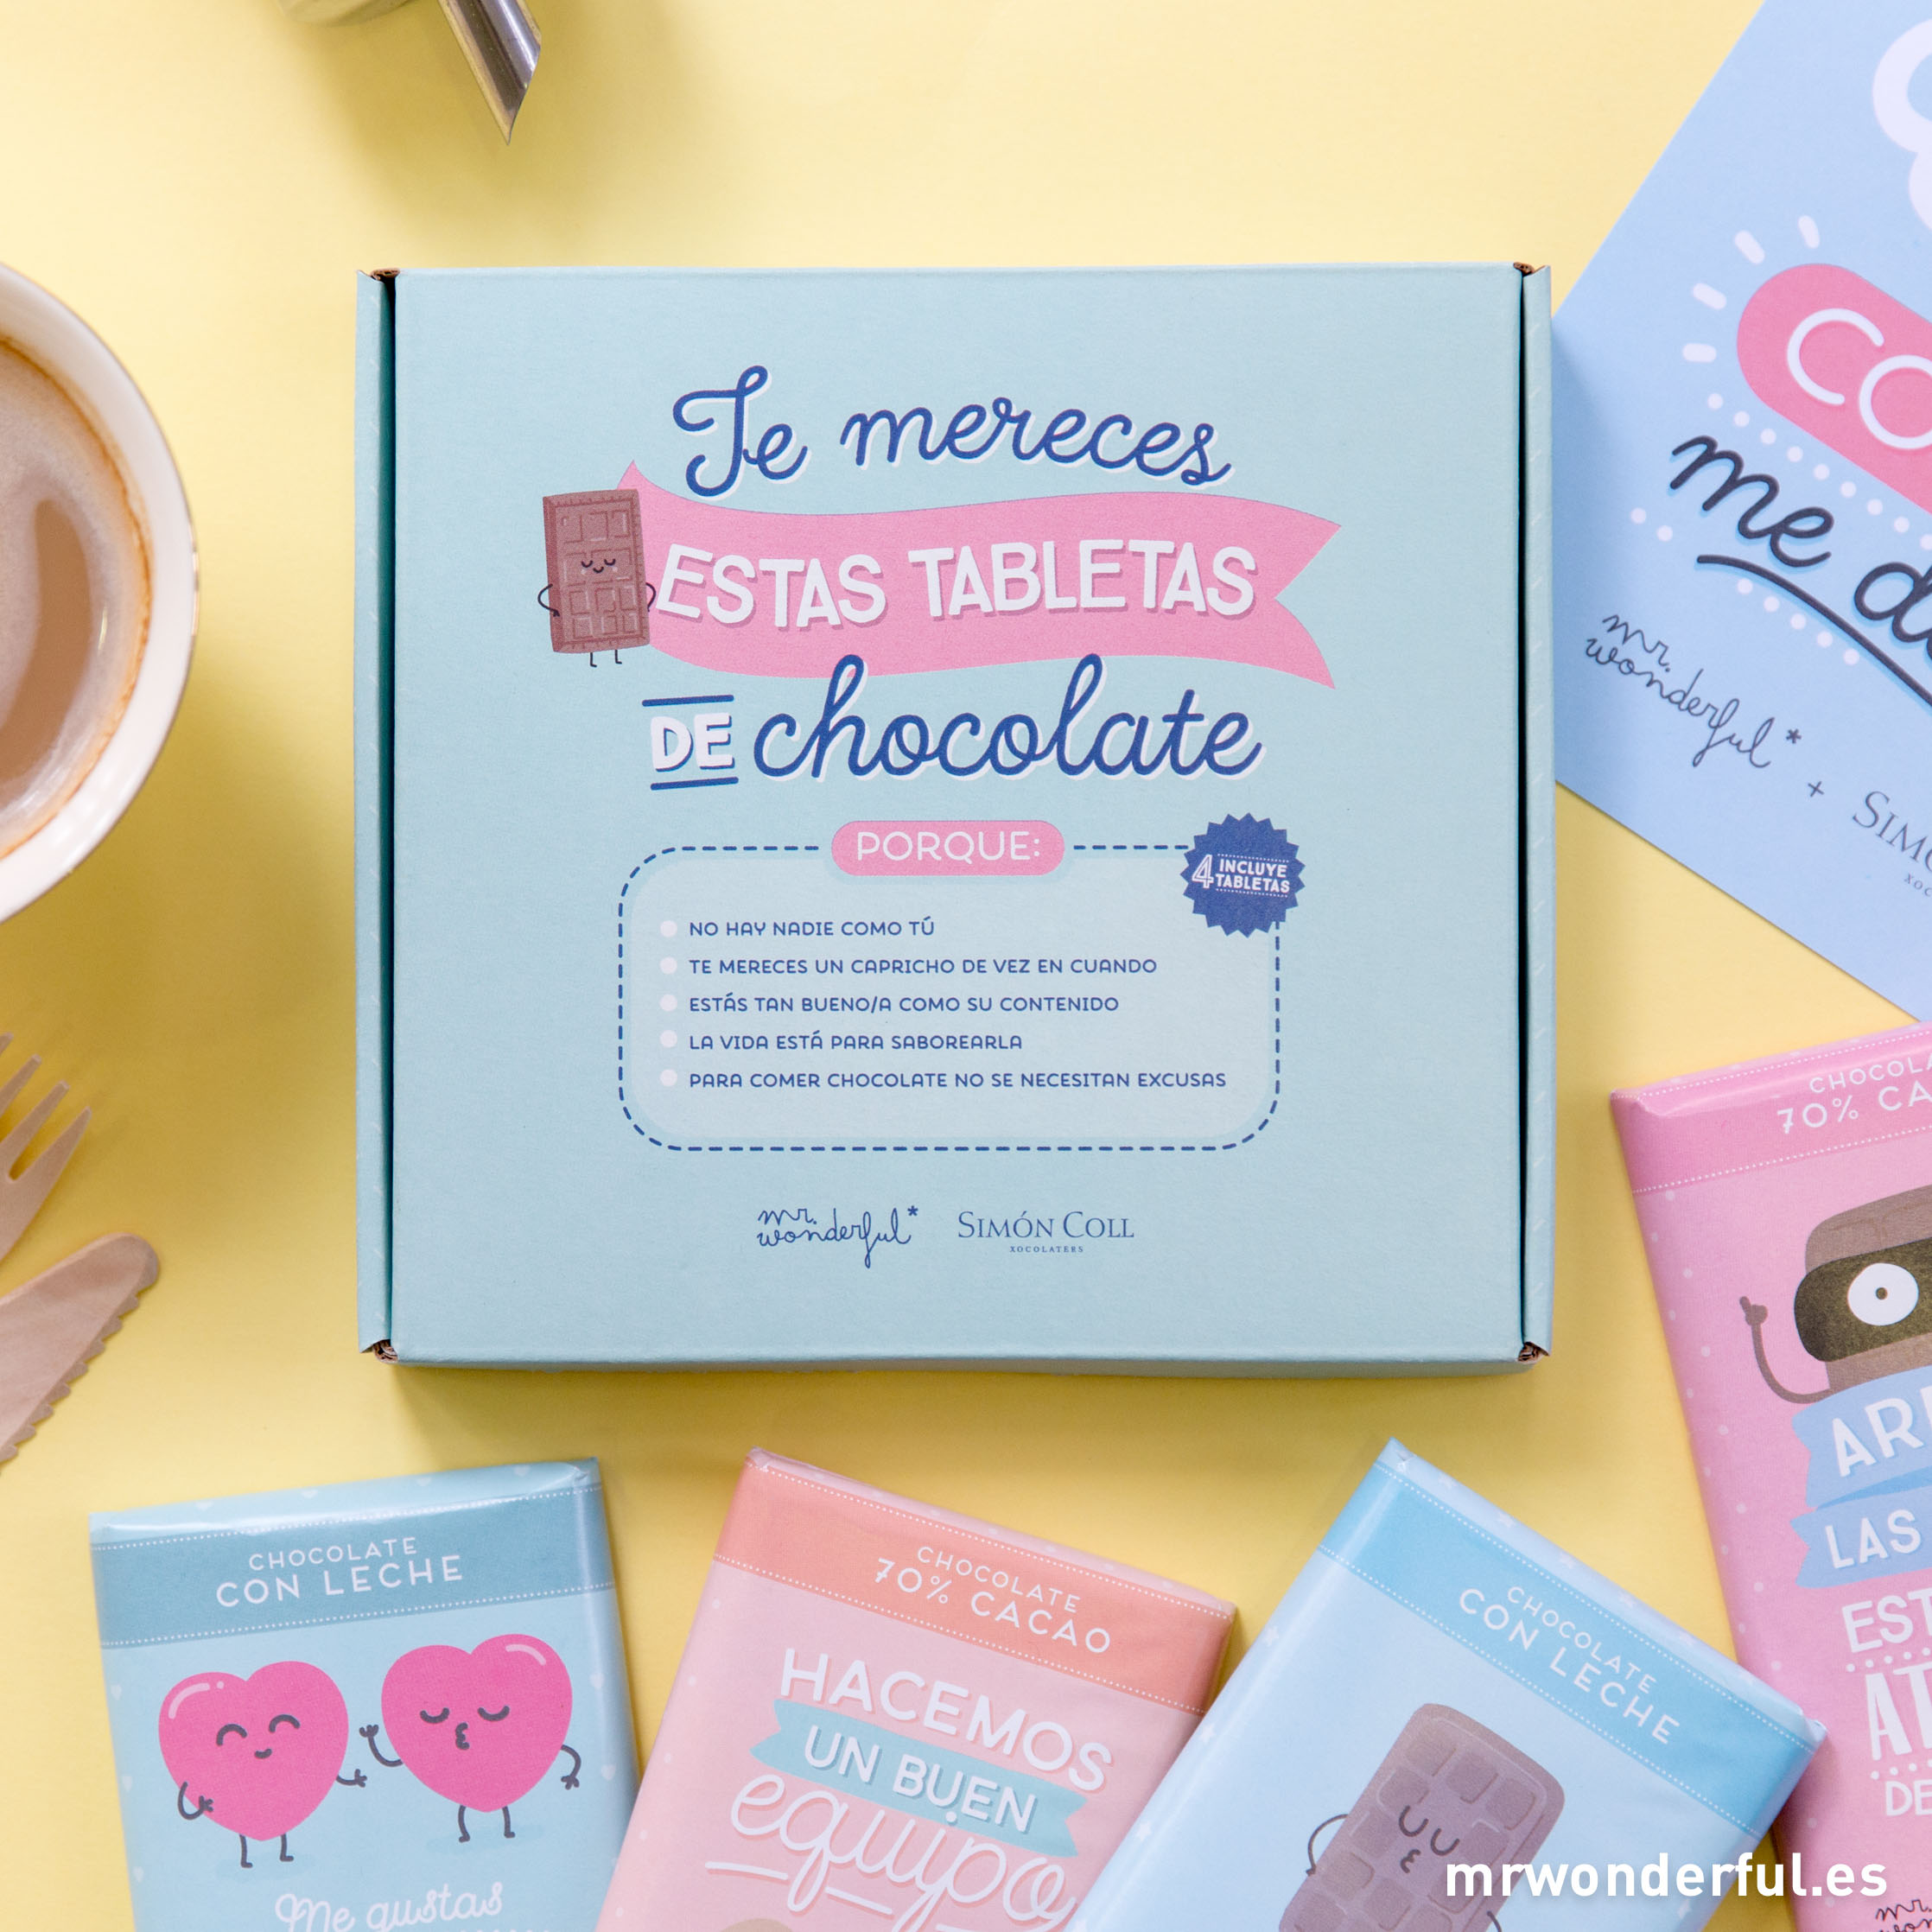 mrwonderful_chocolates-simon-coll-2015-53